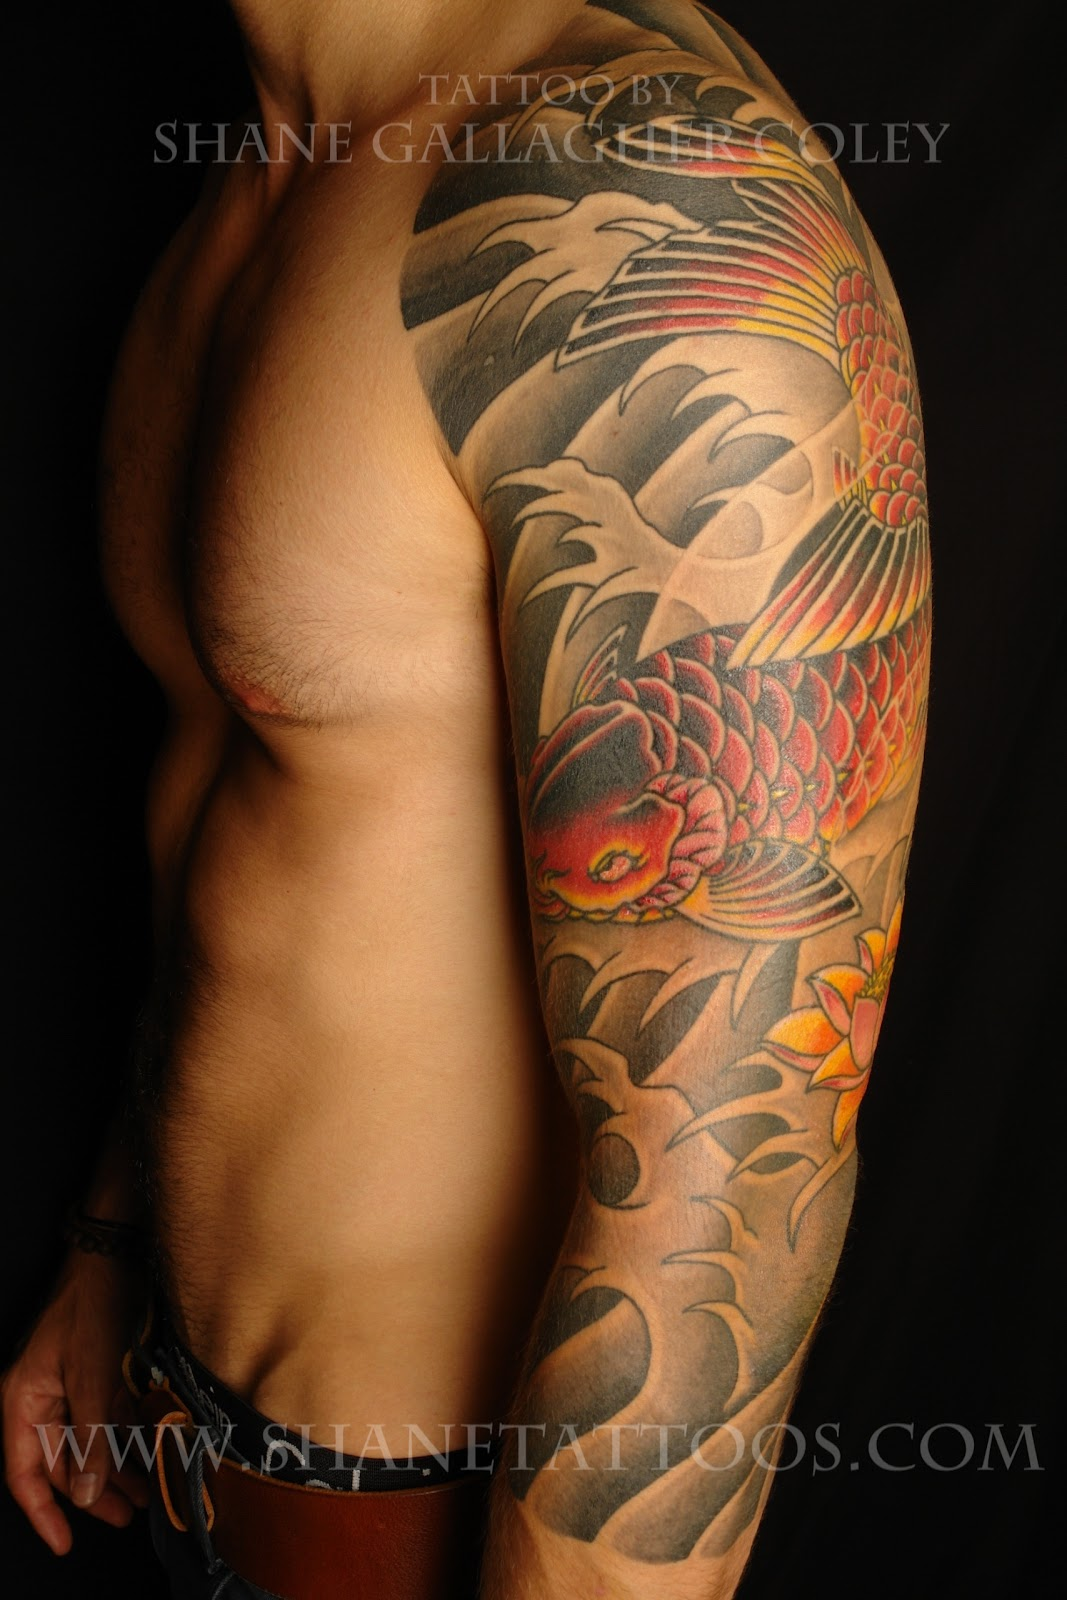 How Much Would This Tattoo Cost Estimate Full Sleeve Yahoo